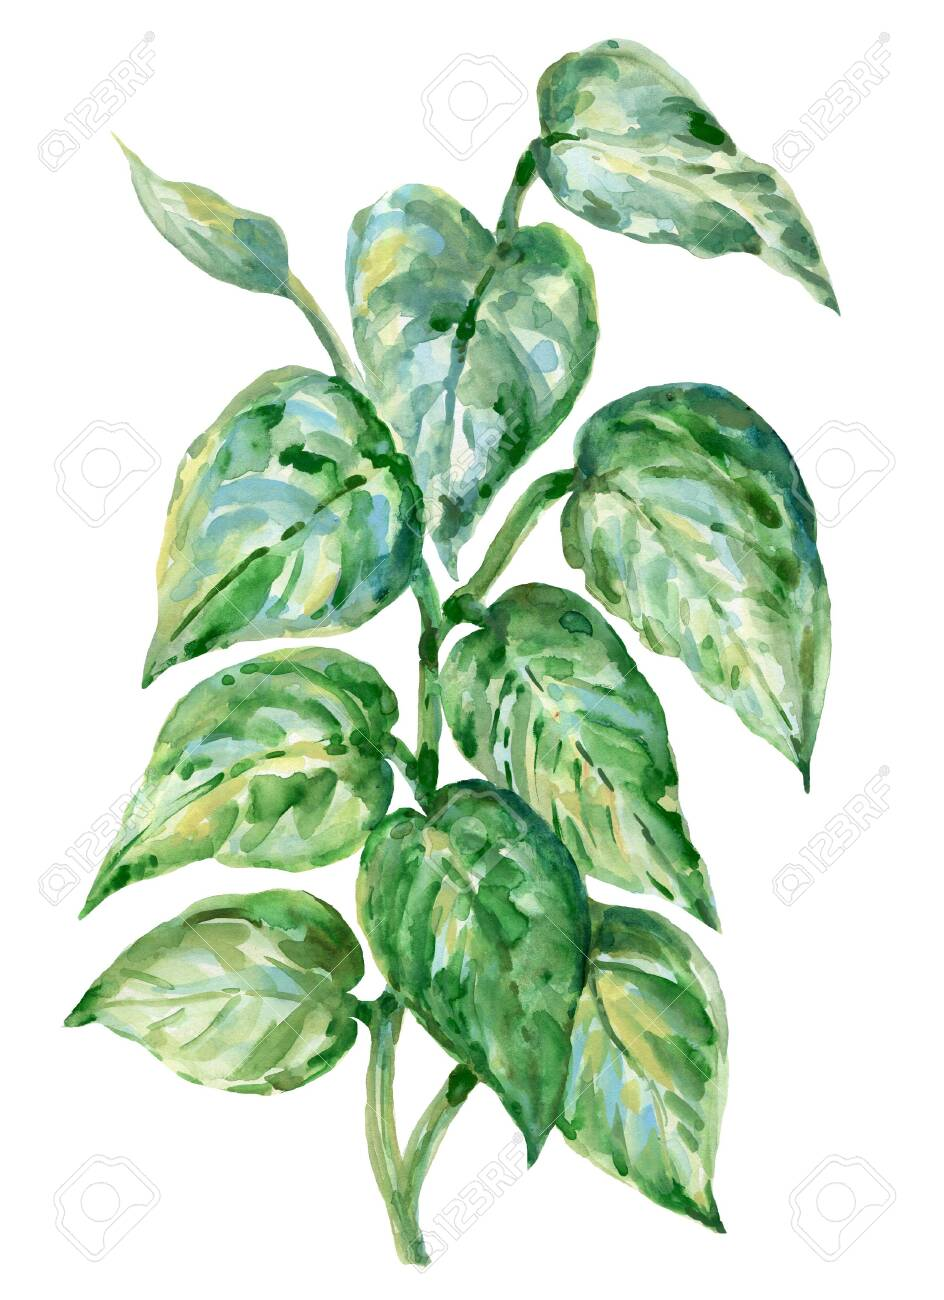 Watercolor Illustration Golden Pothos Botanical Leaves Collection Stock Photo Picture And Royalty Free Image Image 132548590